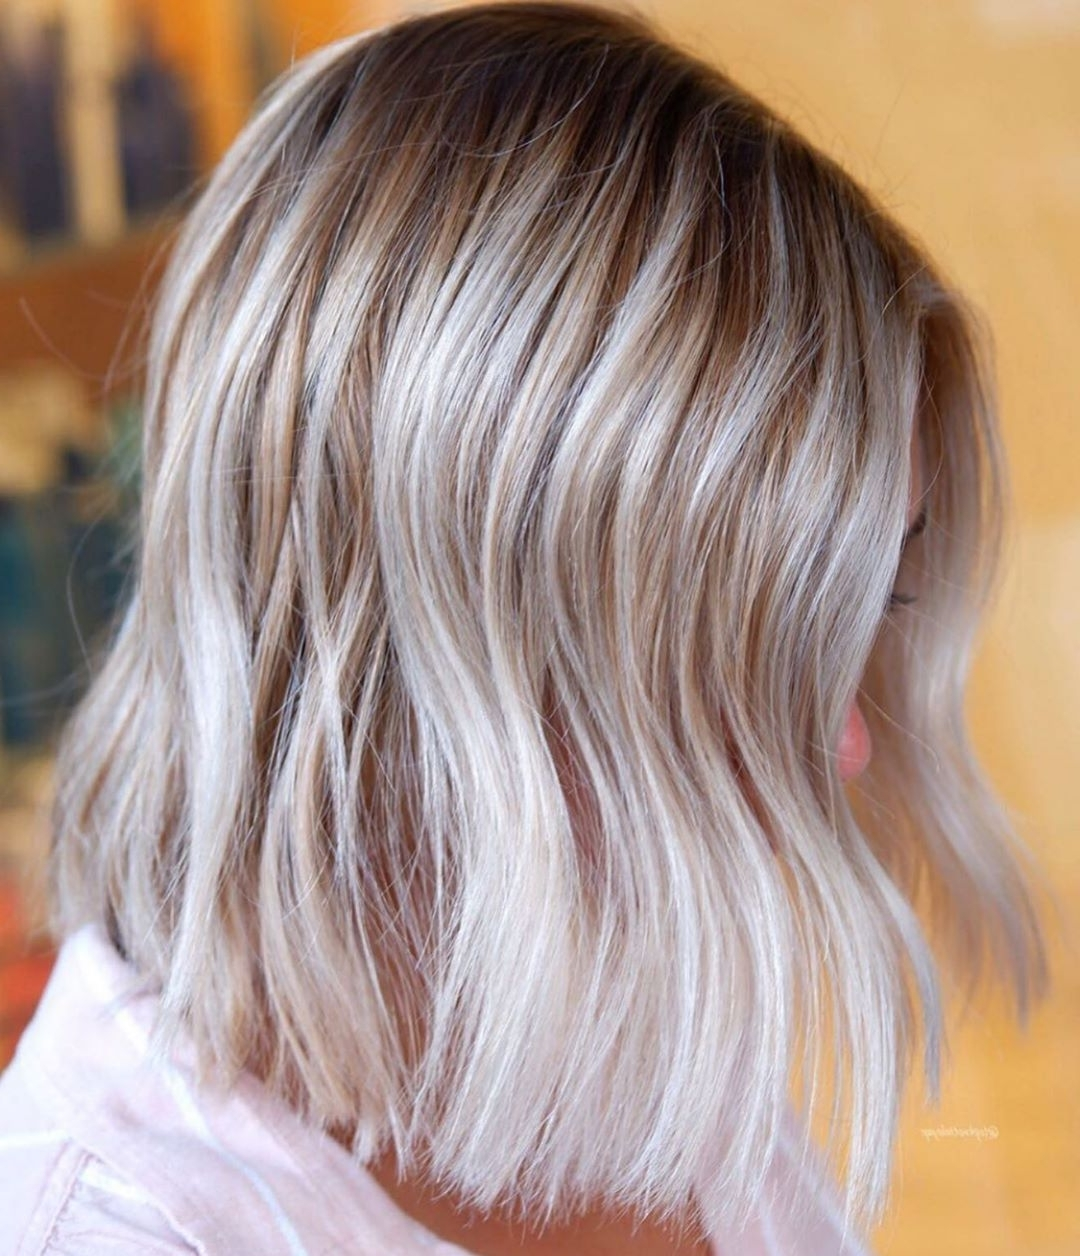 10 Ombre Hairstyles For Medium Length Hair Women Medium Hairstyles Medium Blonde Fine Hair